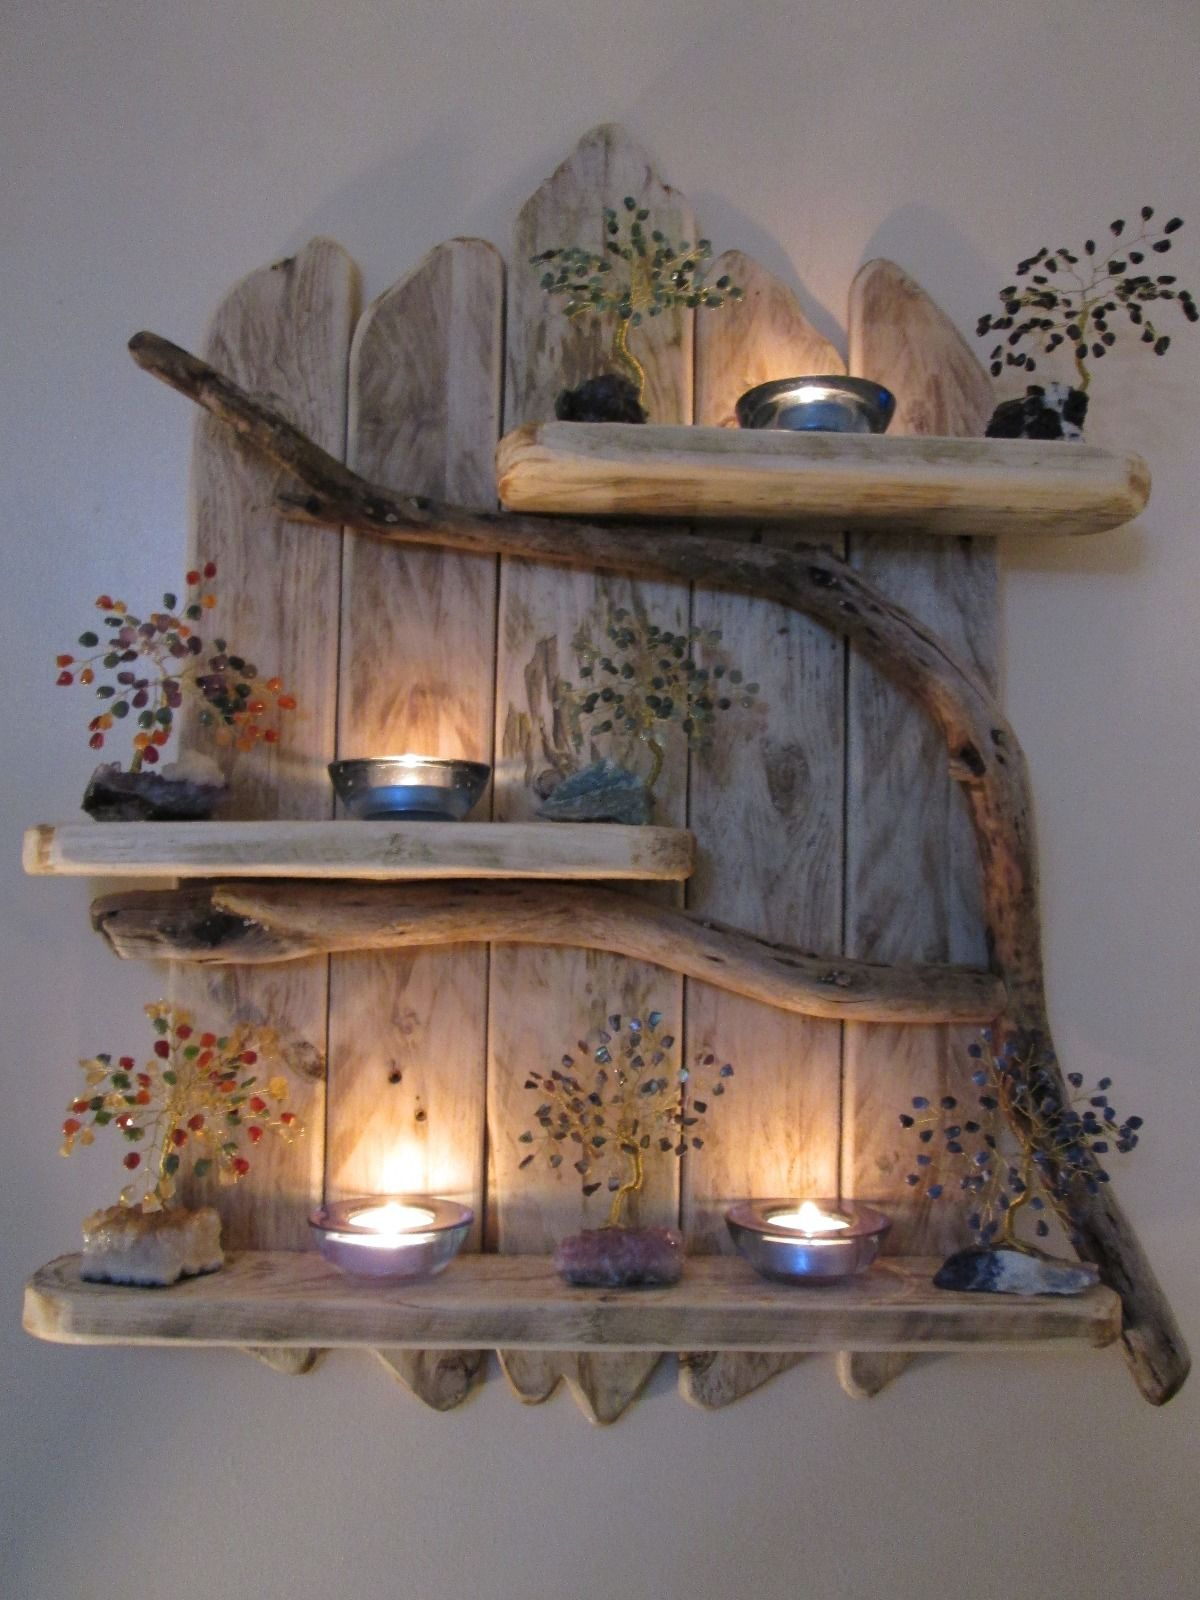 Charming Natural Genuine Driftwood Shelves Solid Rustic Shabby Chic ...